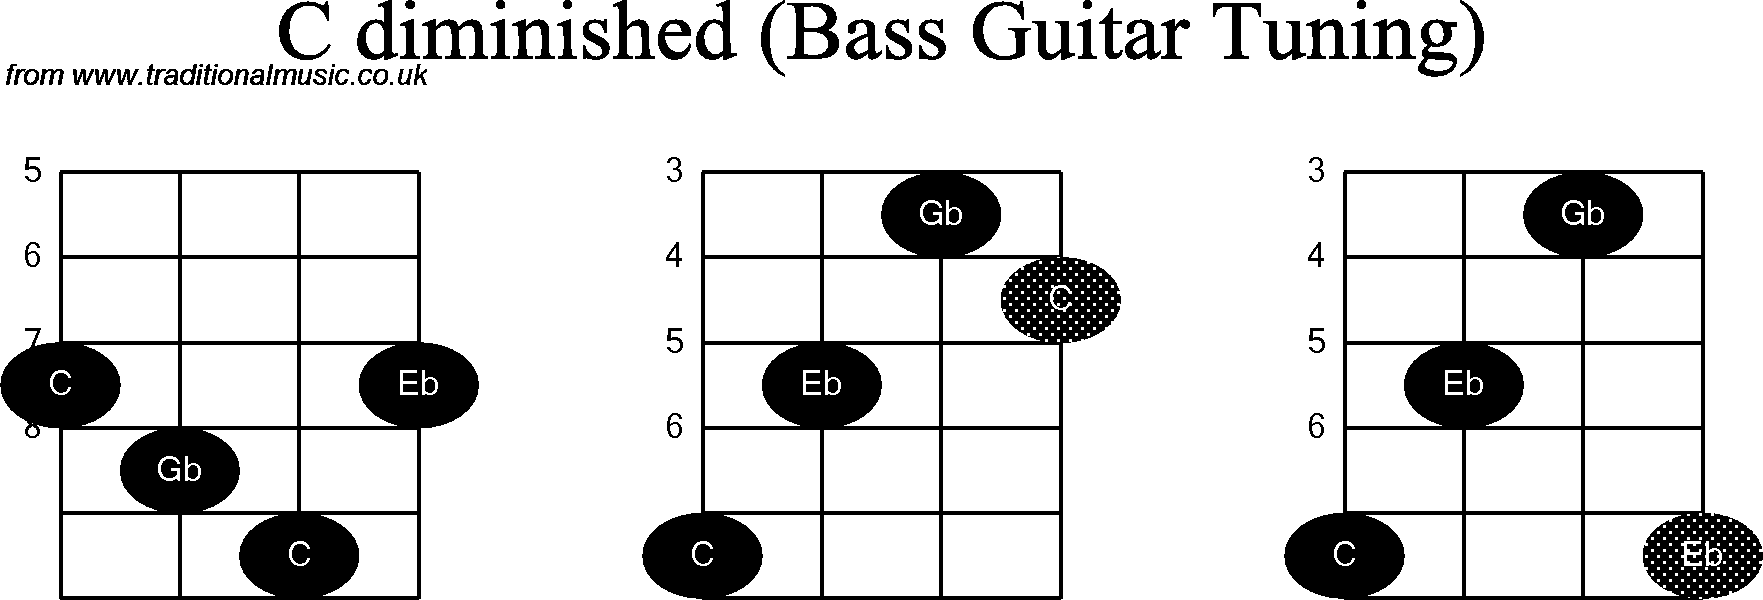 bass guitar chord diagrams for  c diminished